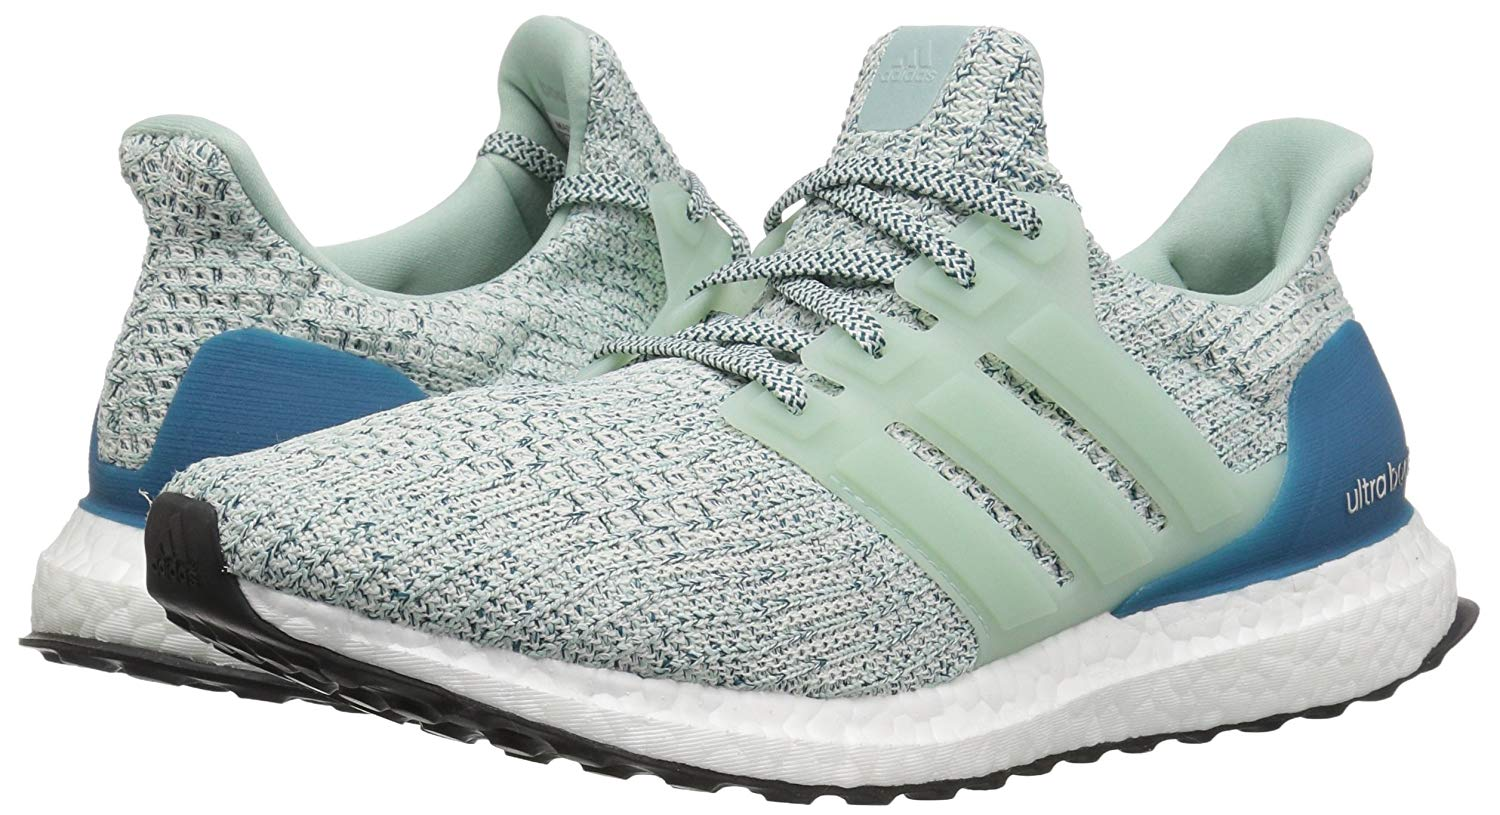 738ac9d92 adidas Womens Ultraboost Running Shoes. Item Description. Brand  adidas.  Condition  New with box. Color  Ash Green Real Teal